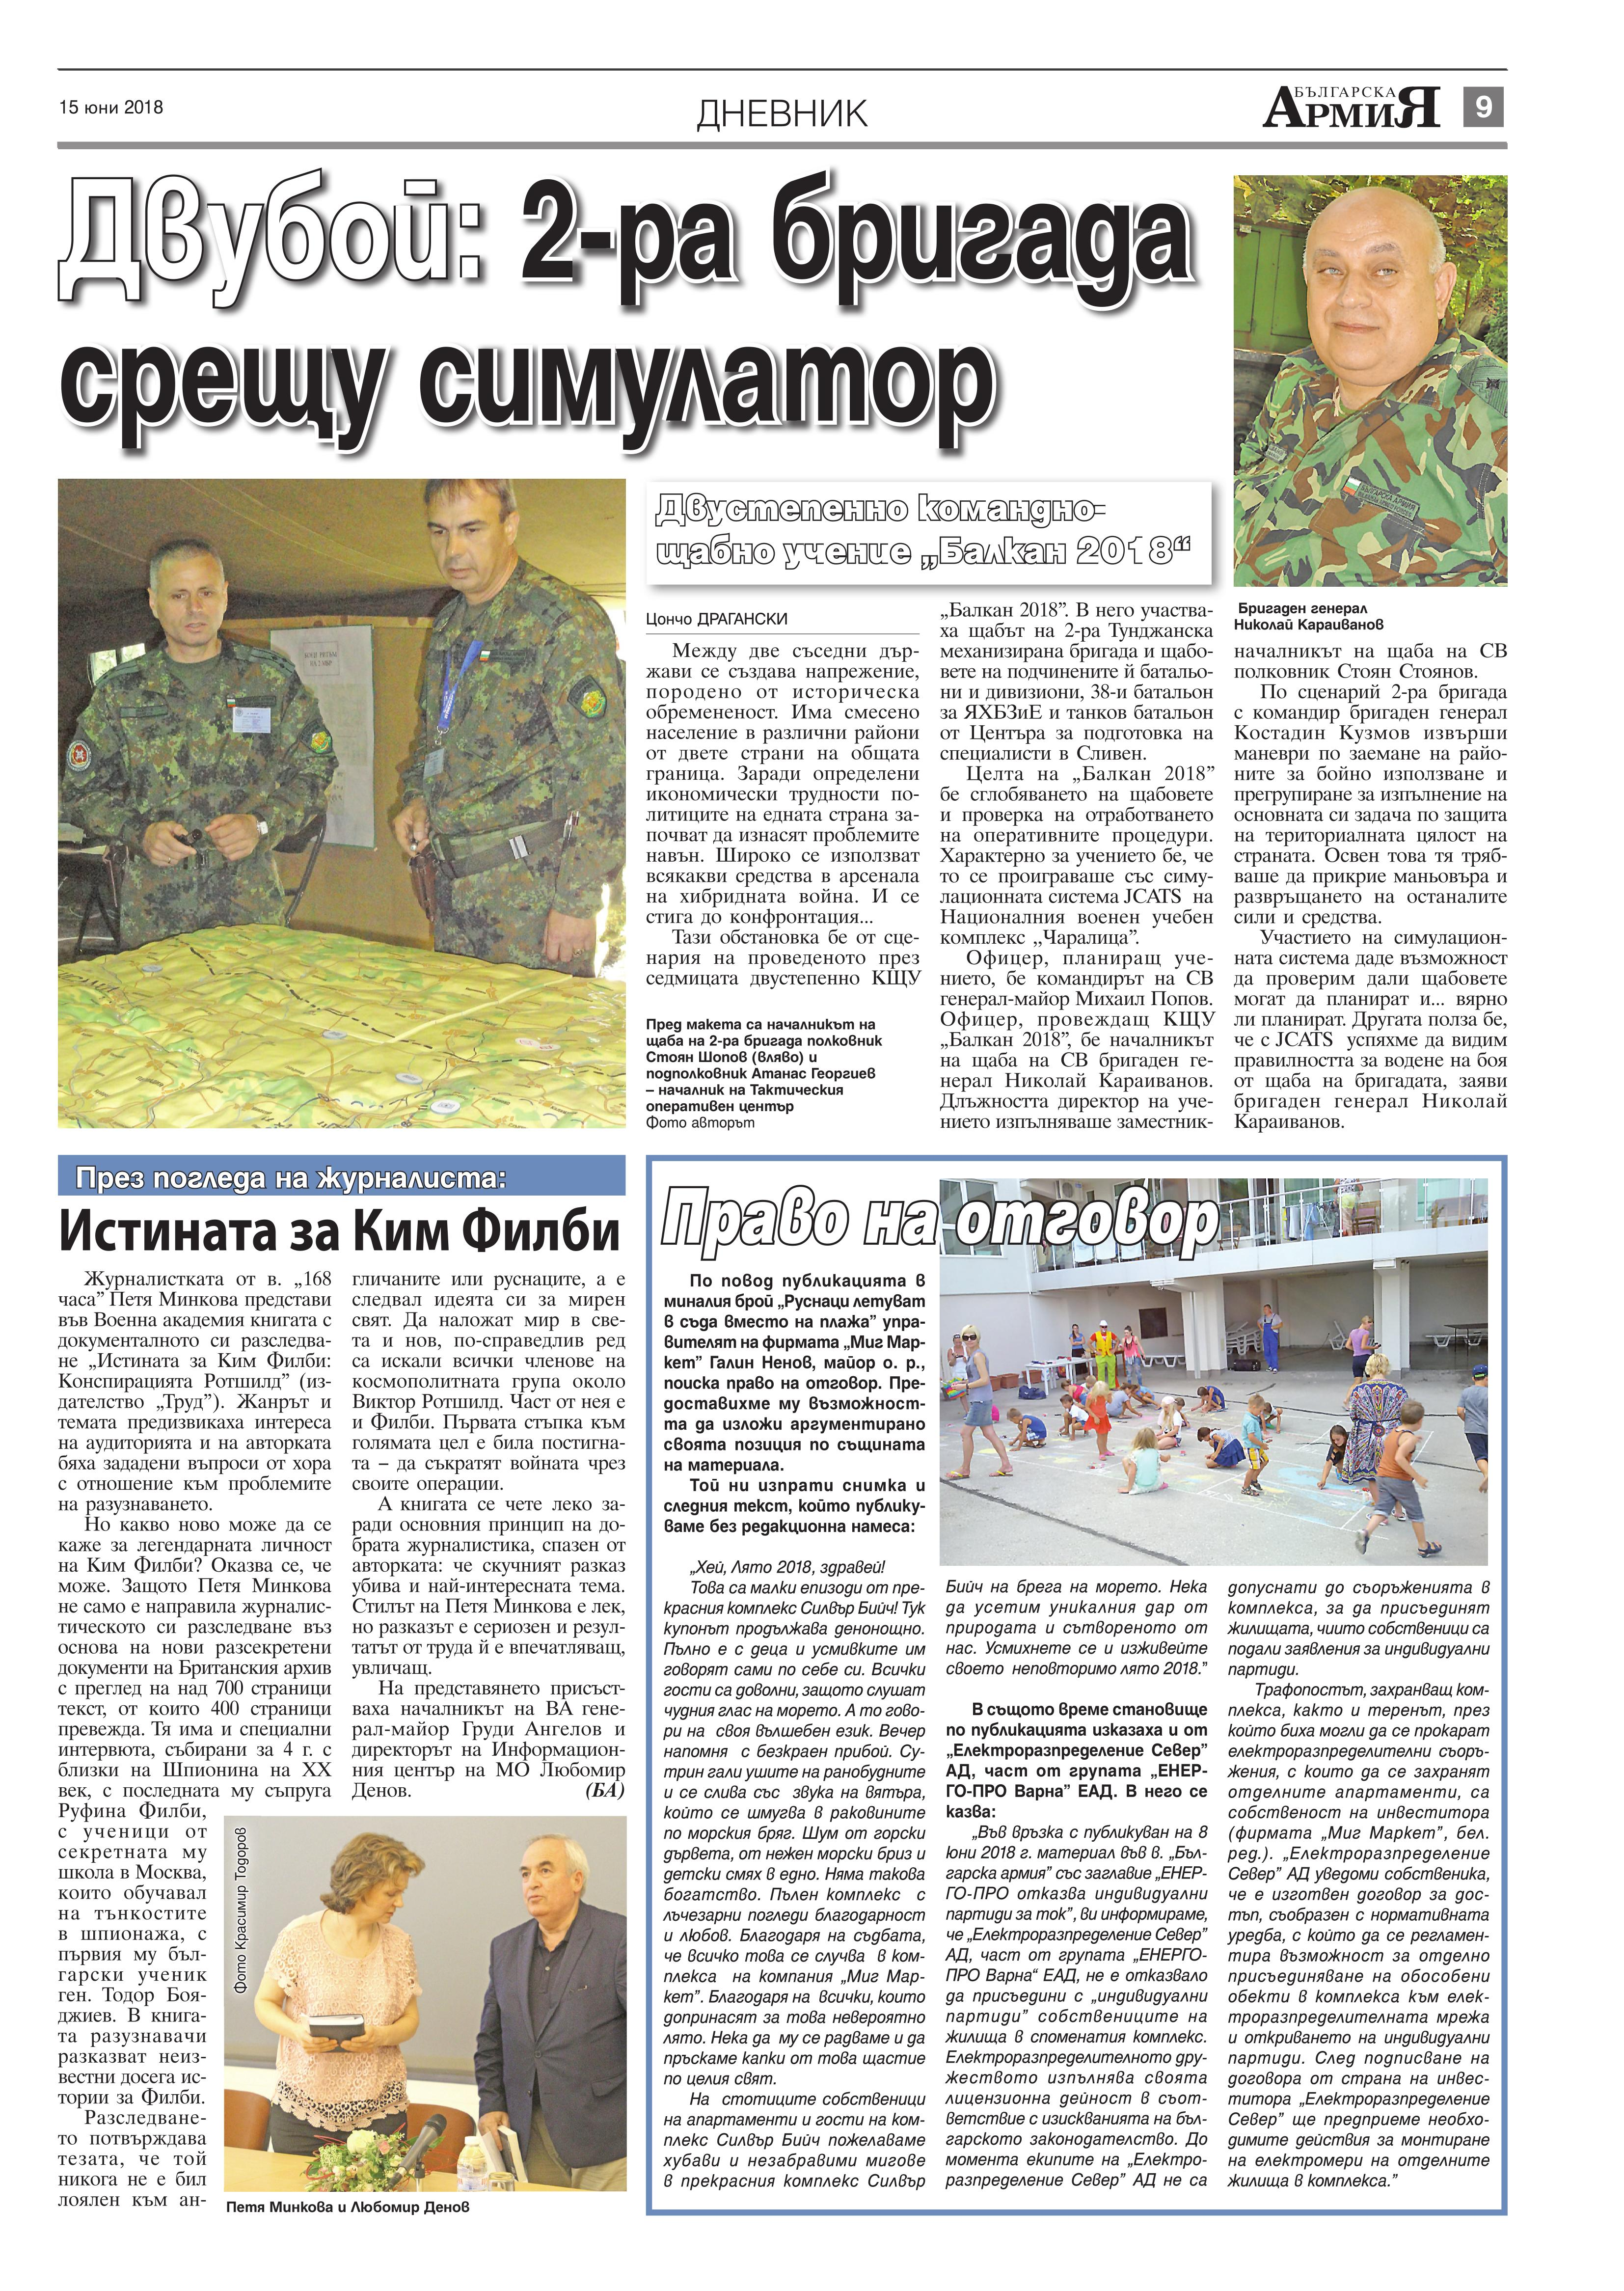 http://armymedia.bg/wp-content/uploads/2015/06/09.page1_-53.jpg